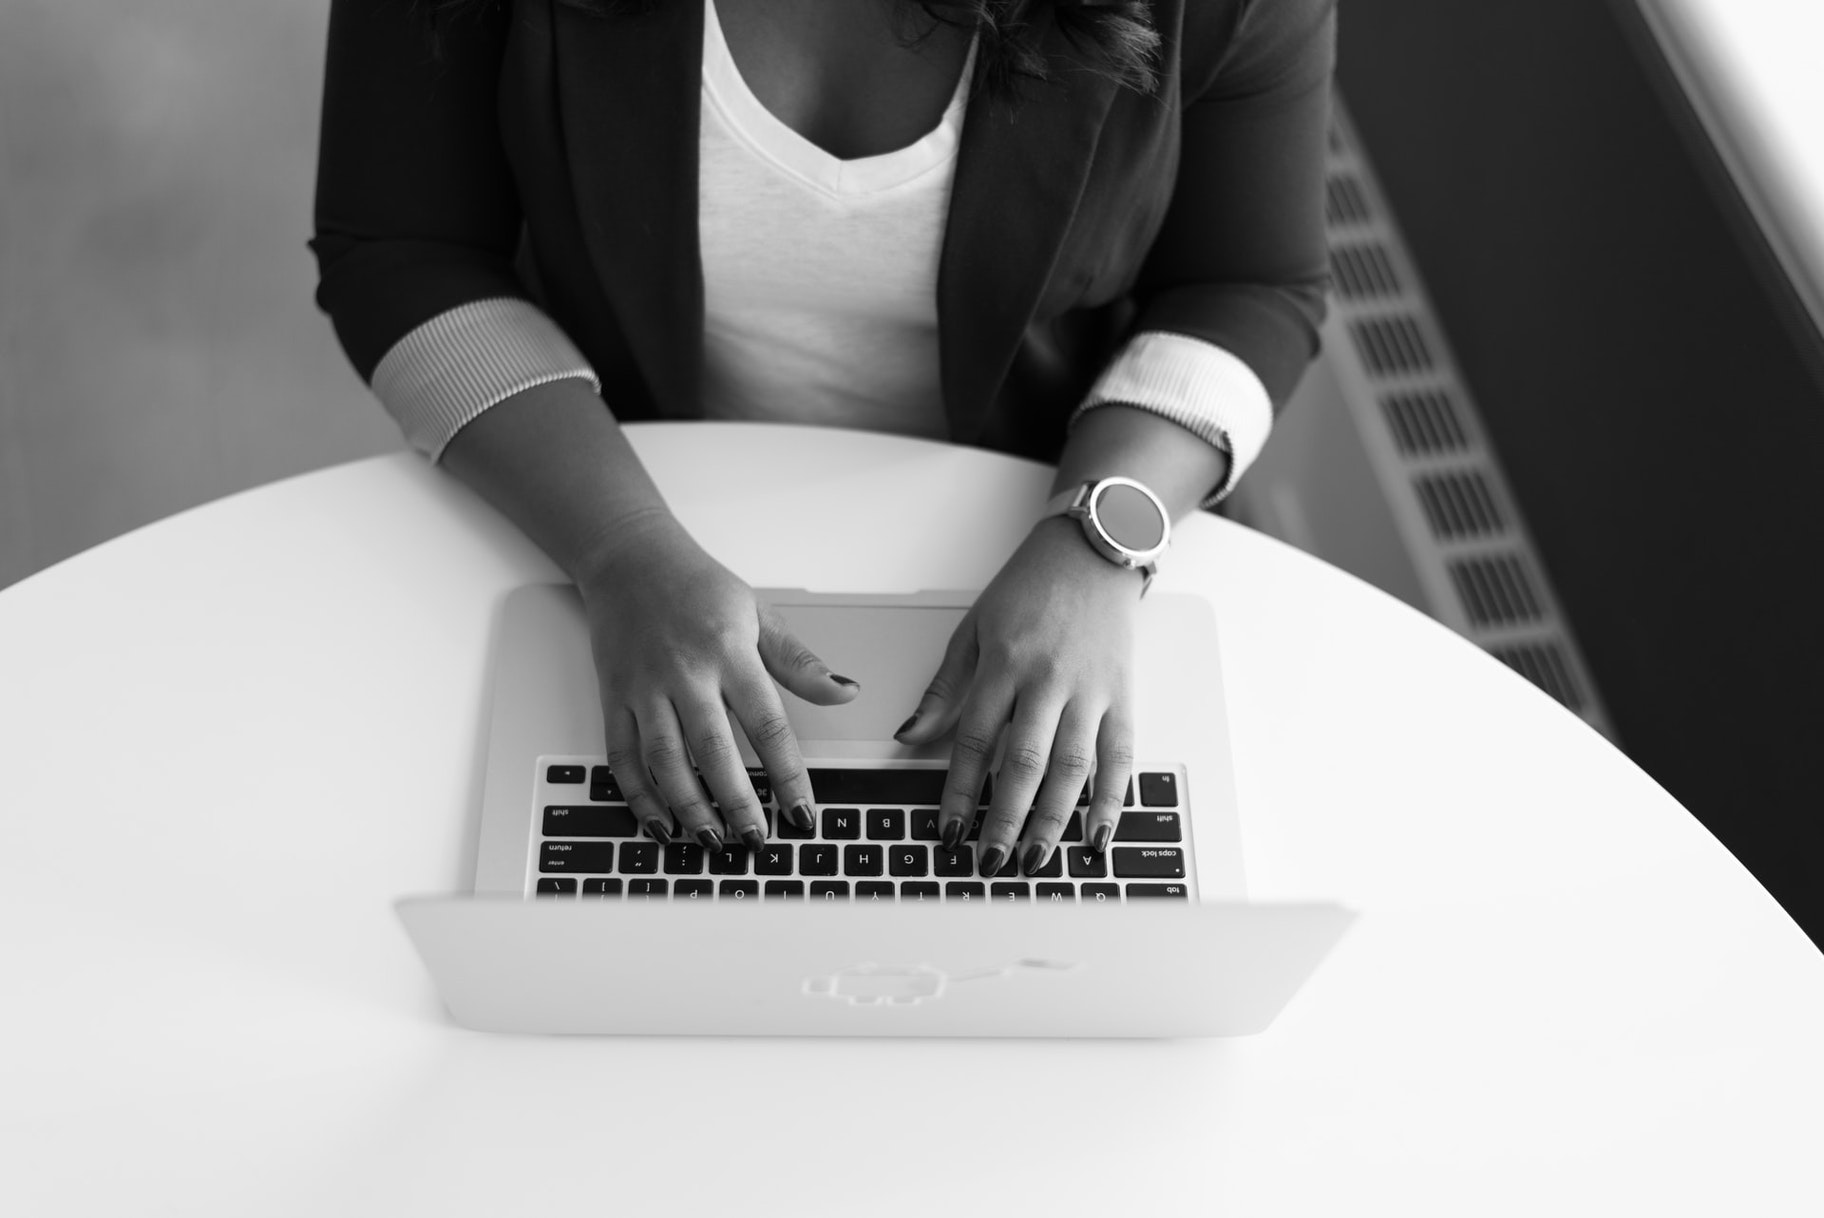 black and white image of woman using laptop